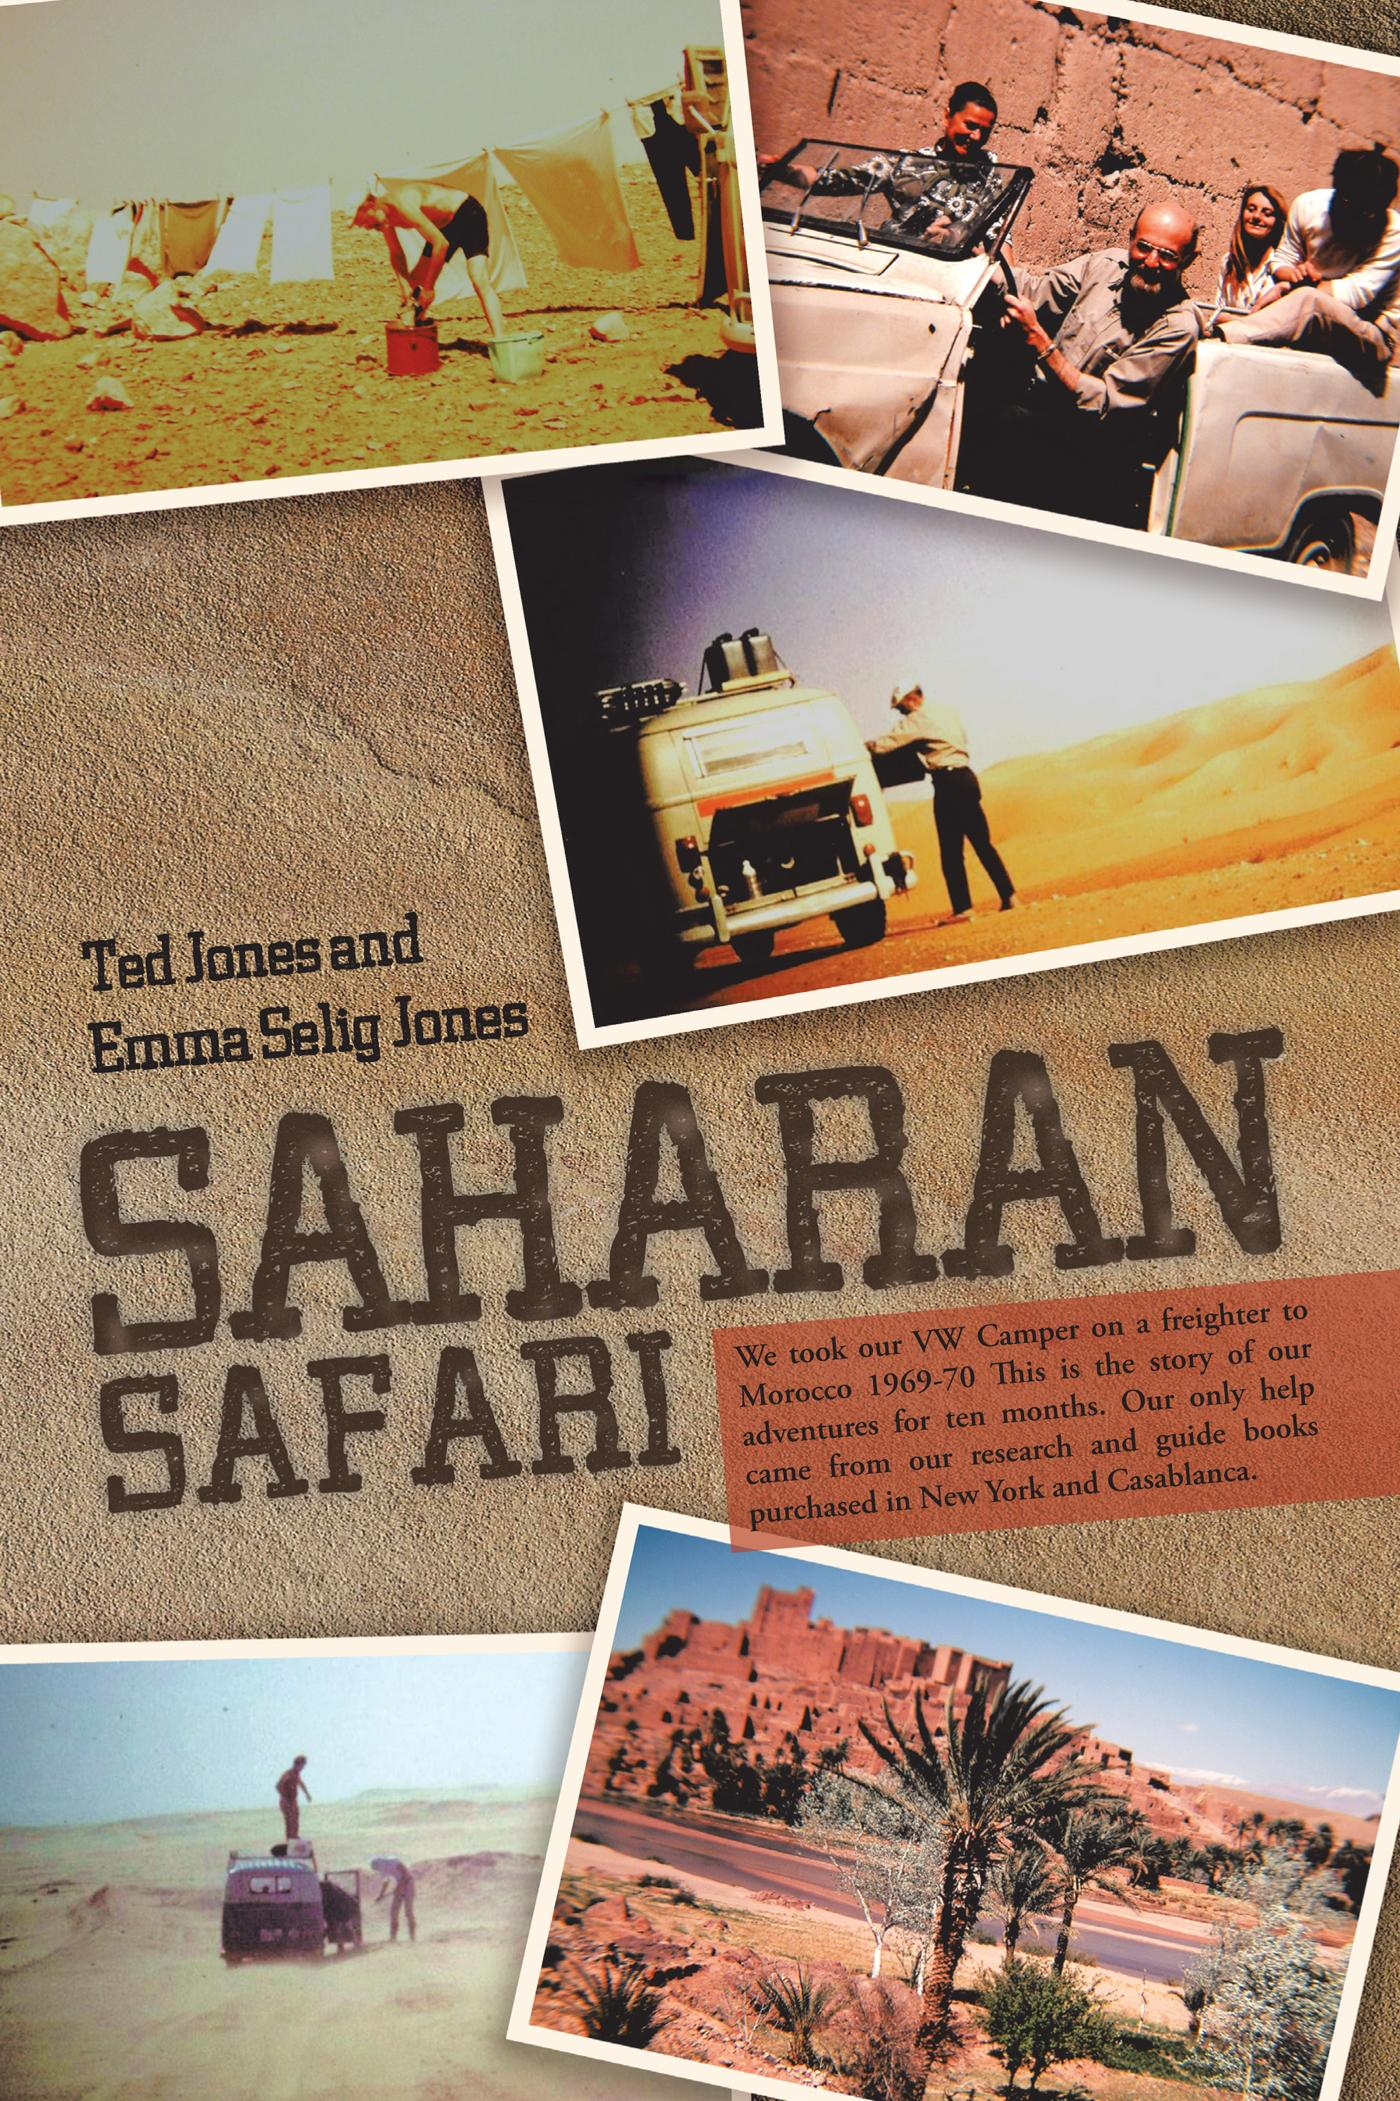 Saharan Safari: We took our VW Camper on a freighter to Morocco 1969-70 This is the story of our adventures for ten months. Our only help came from ou EB9781475942446